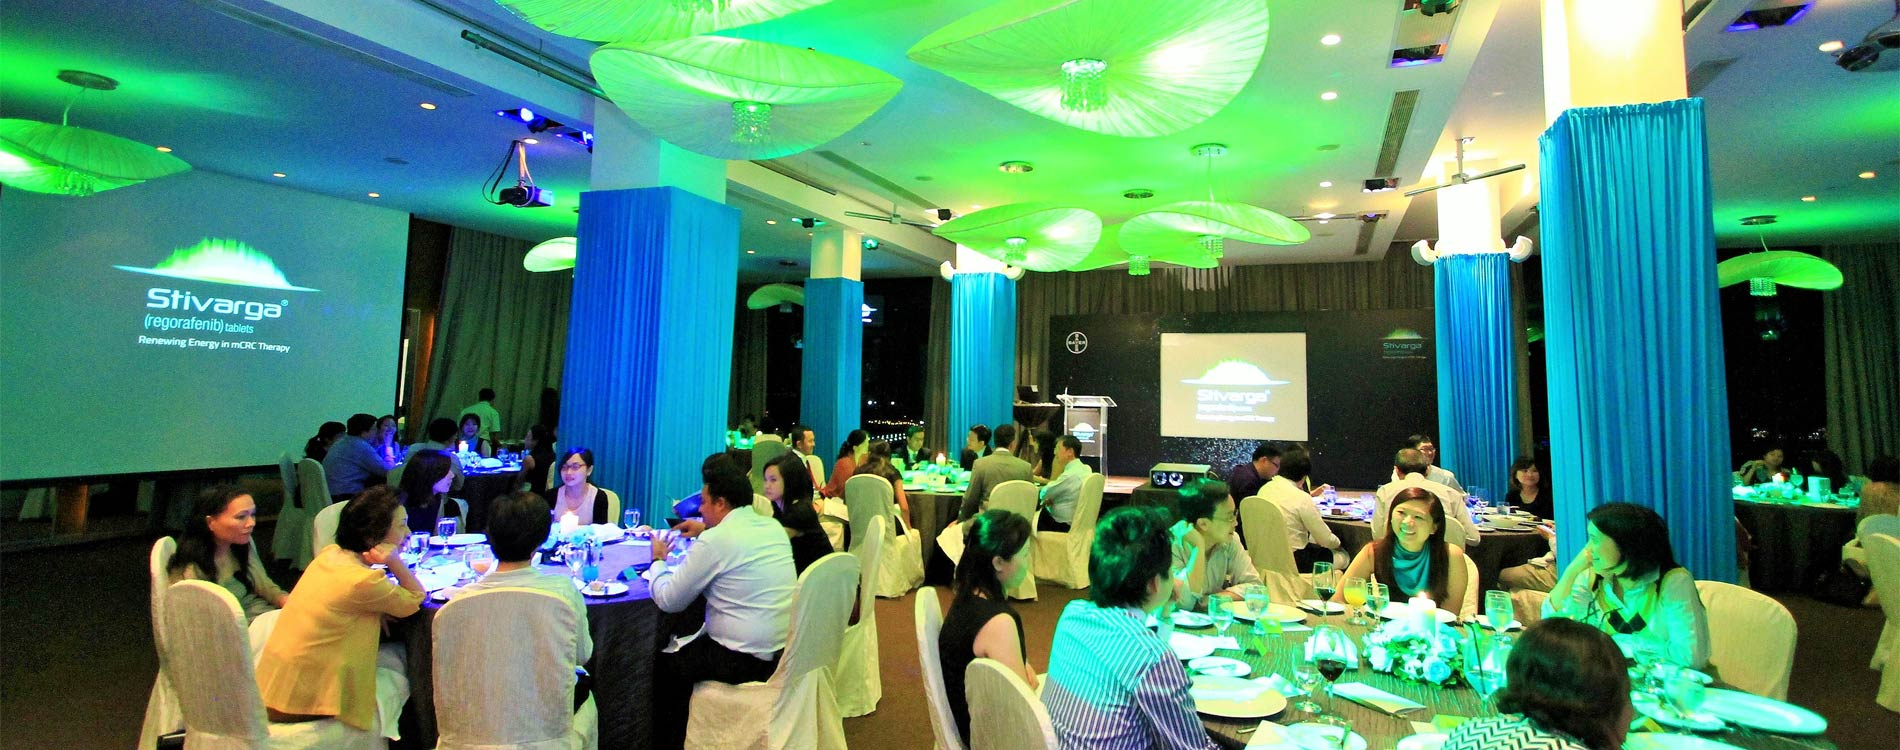 Singapore Events Management Company and Launches Grand Openings Singapore